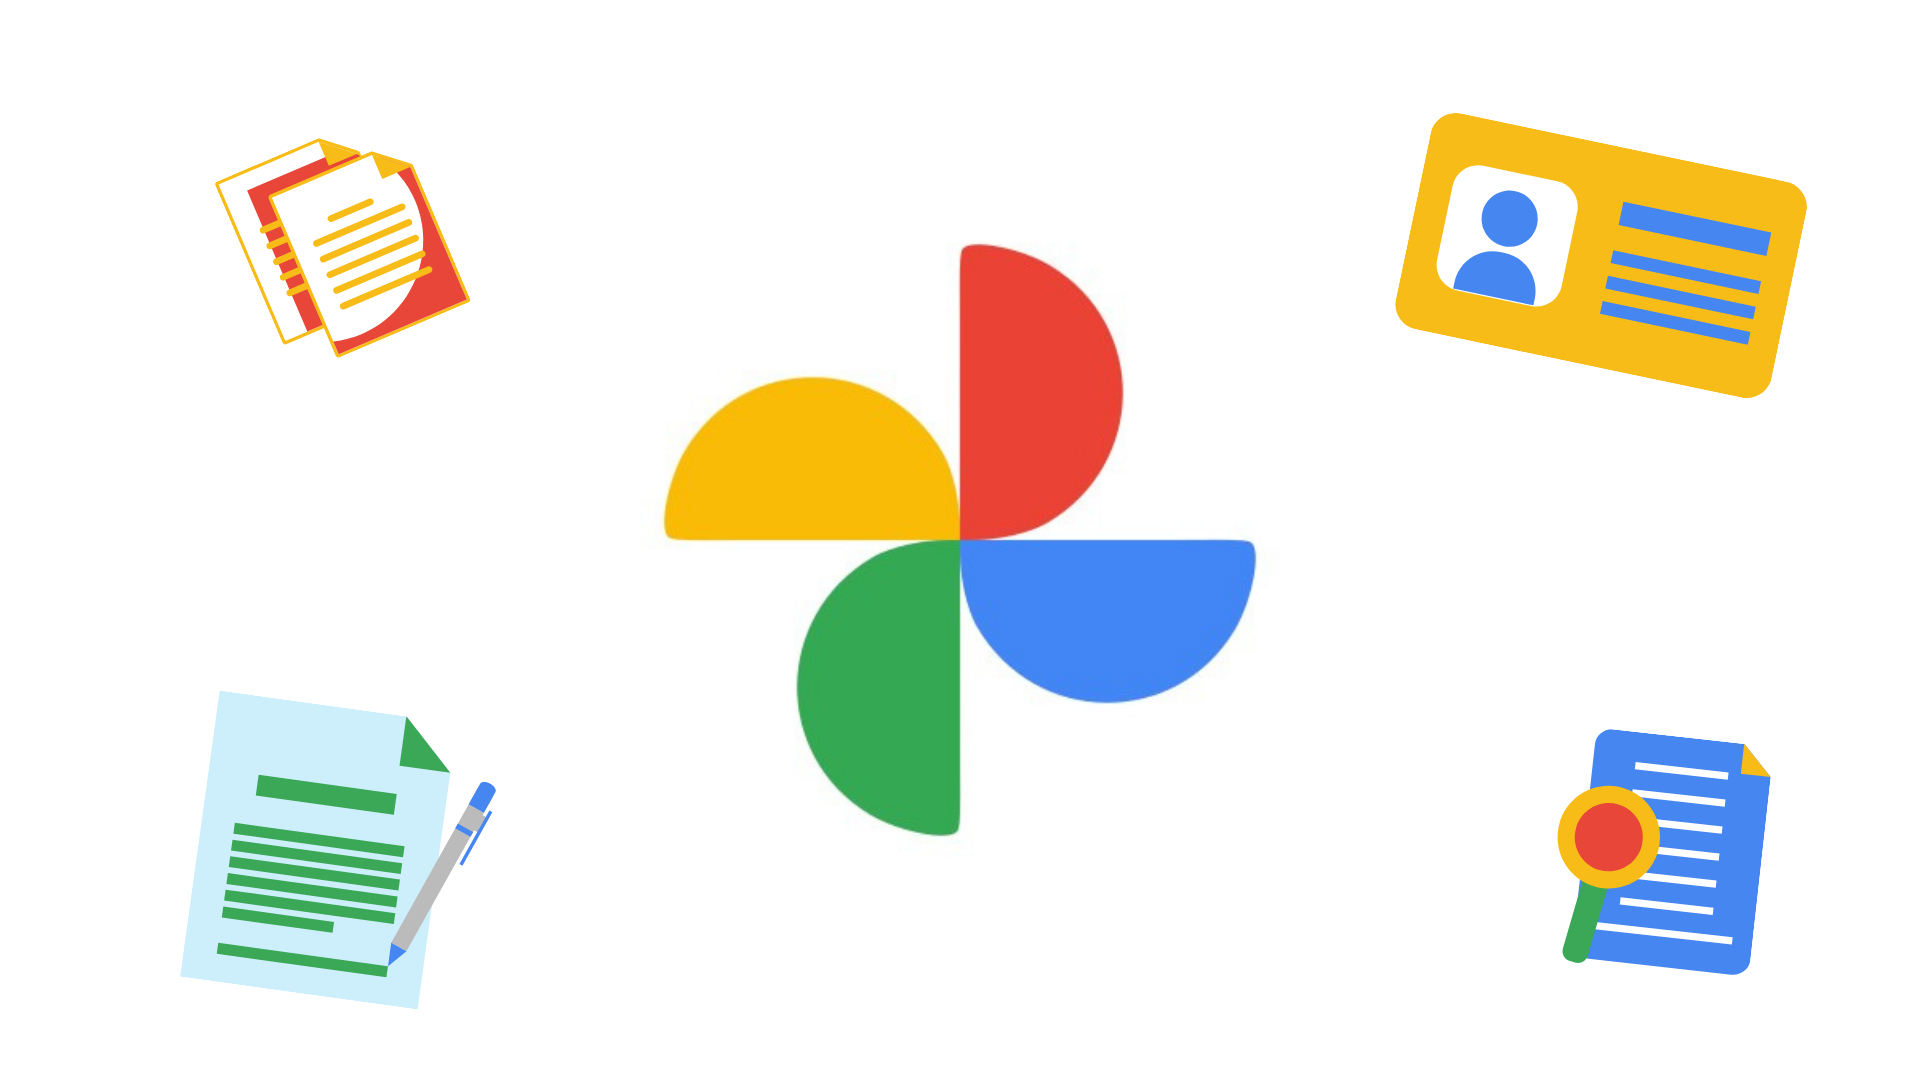 Google Photos gets a 'Documents' section